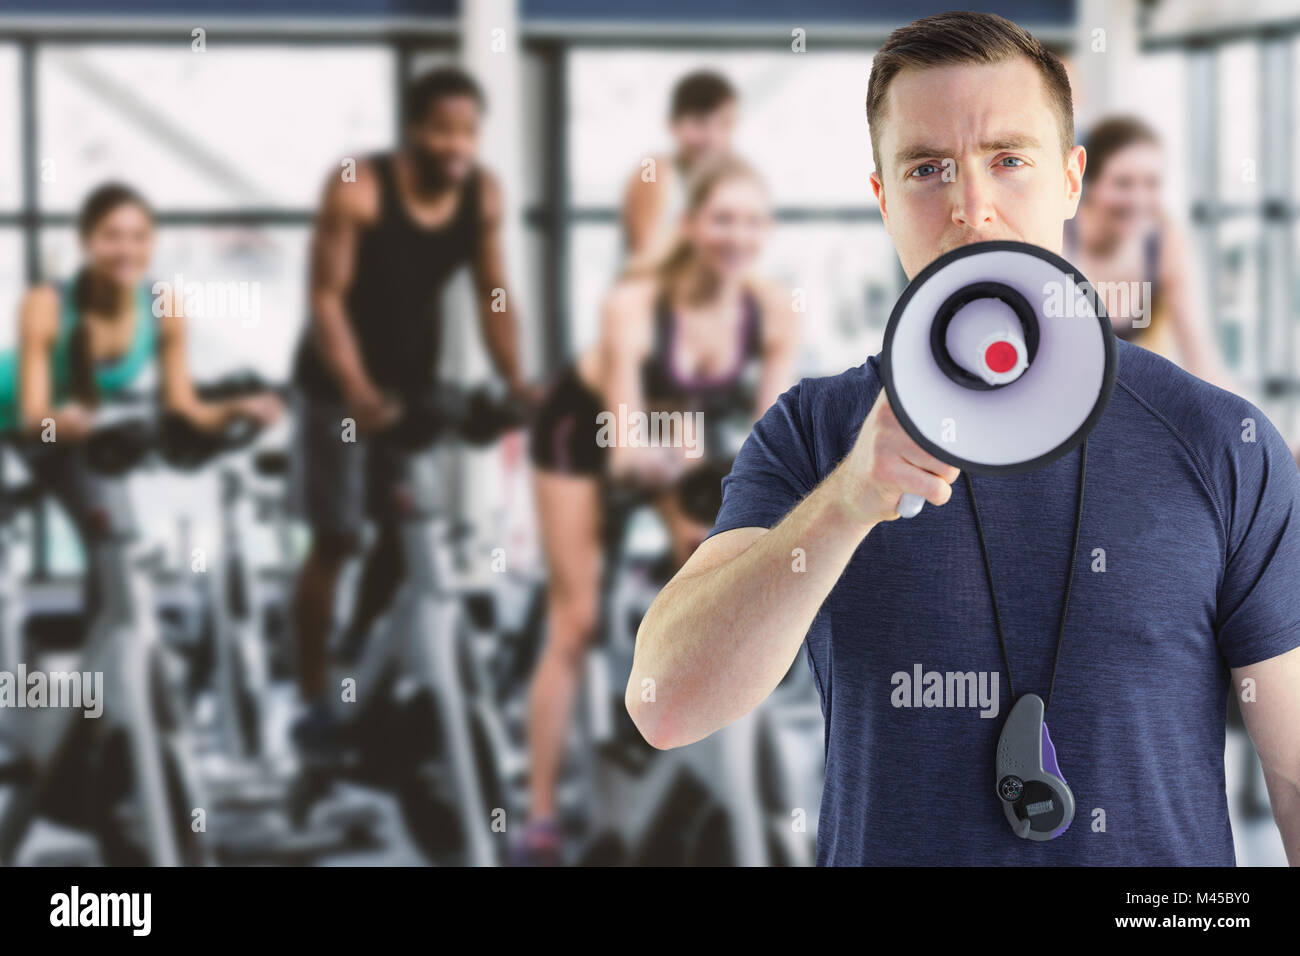 Composite image of male trainer yelling through the megaphone - Stock Image